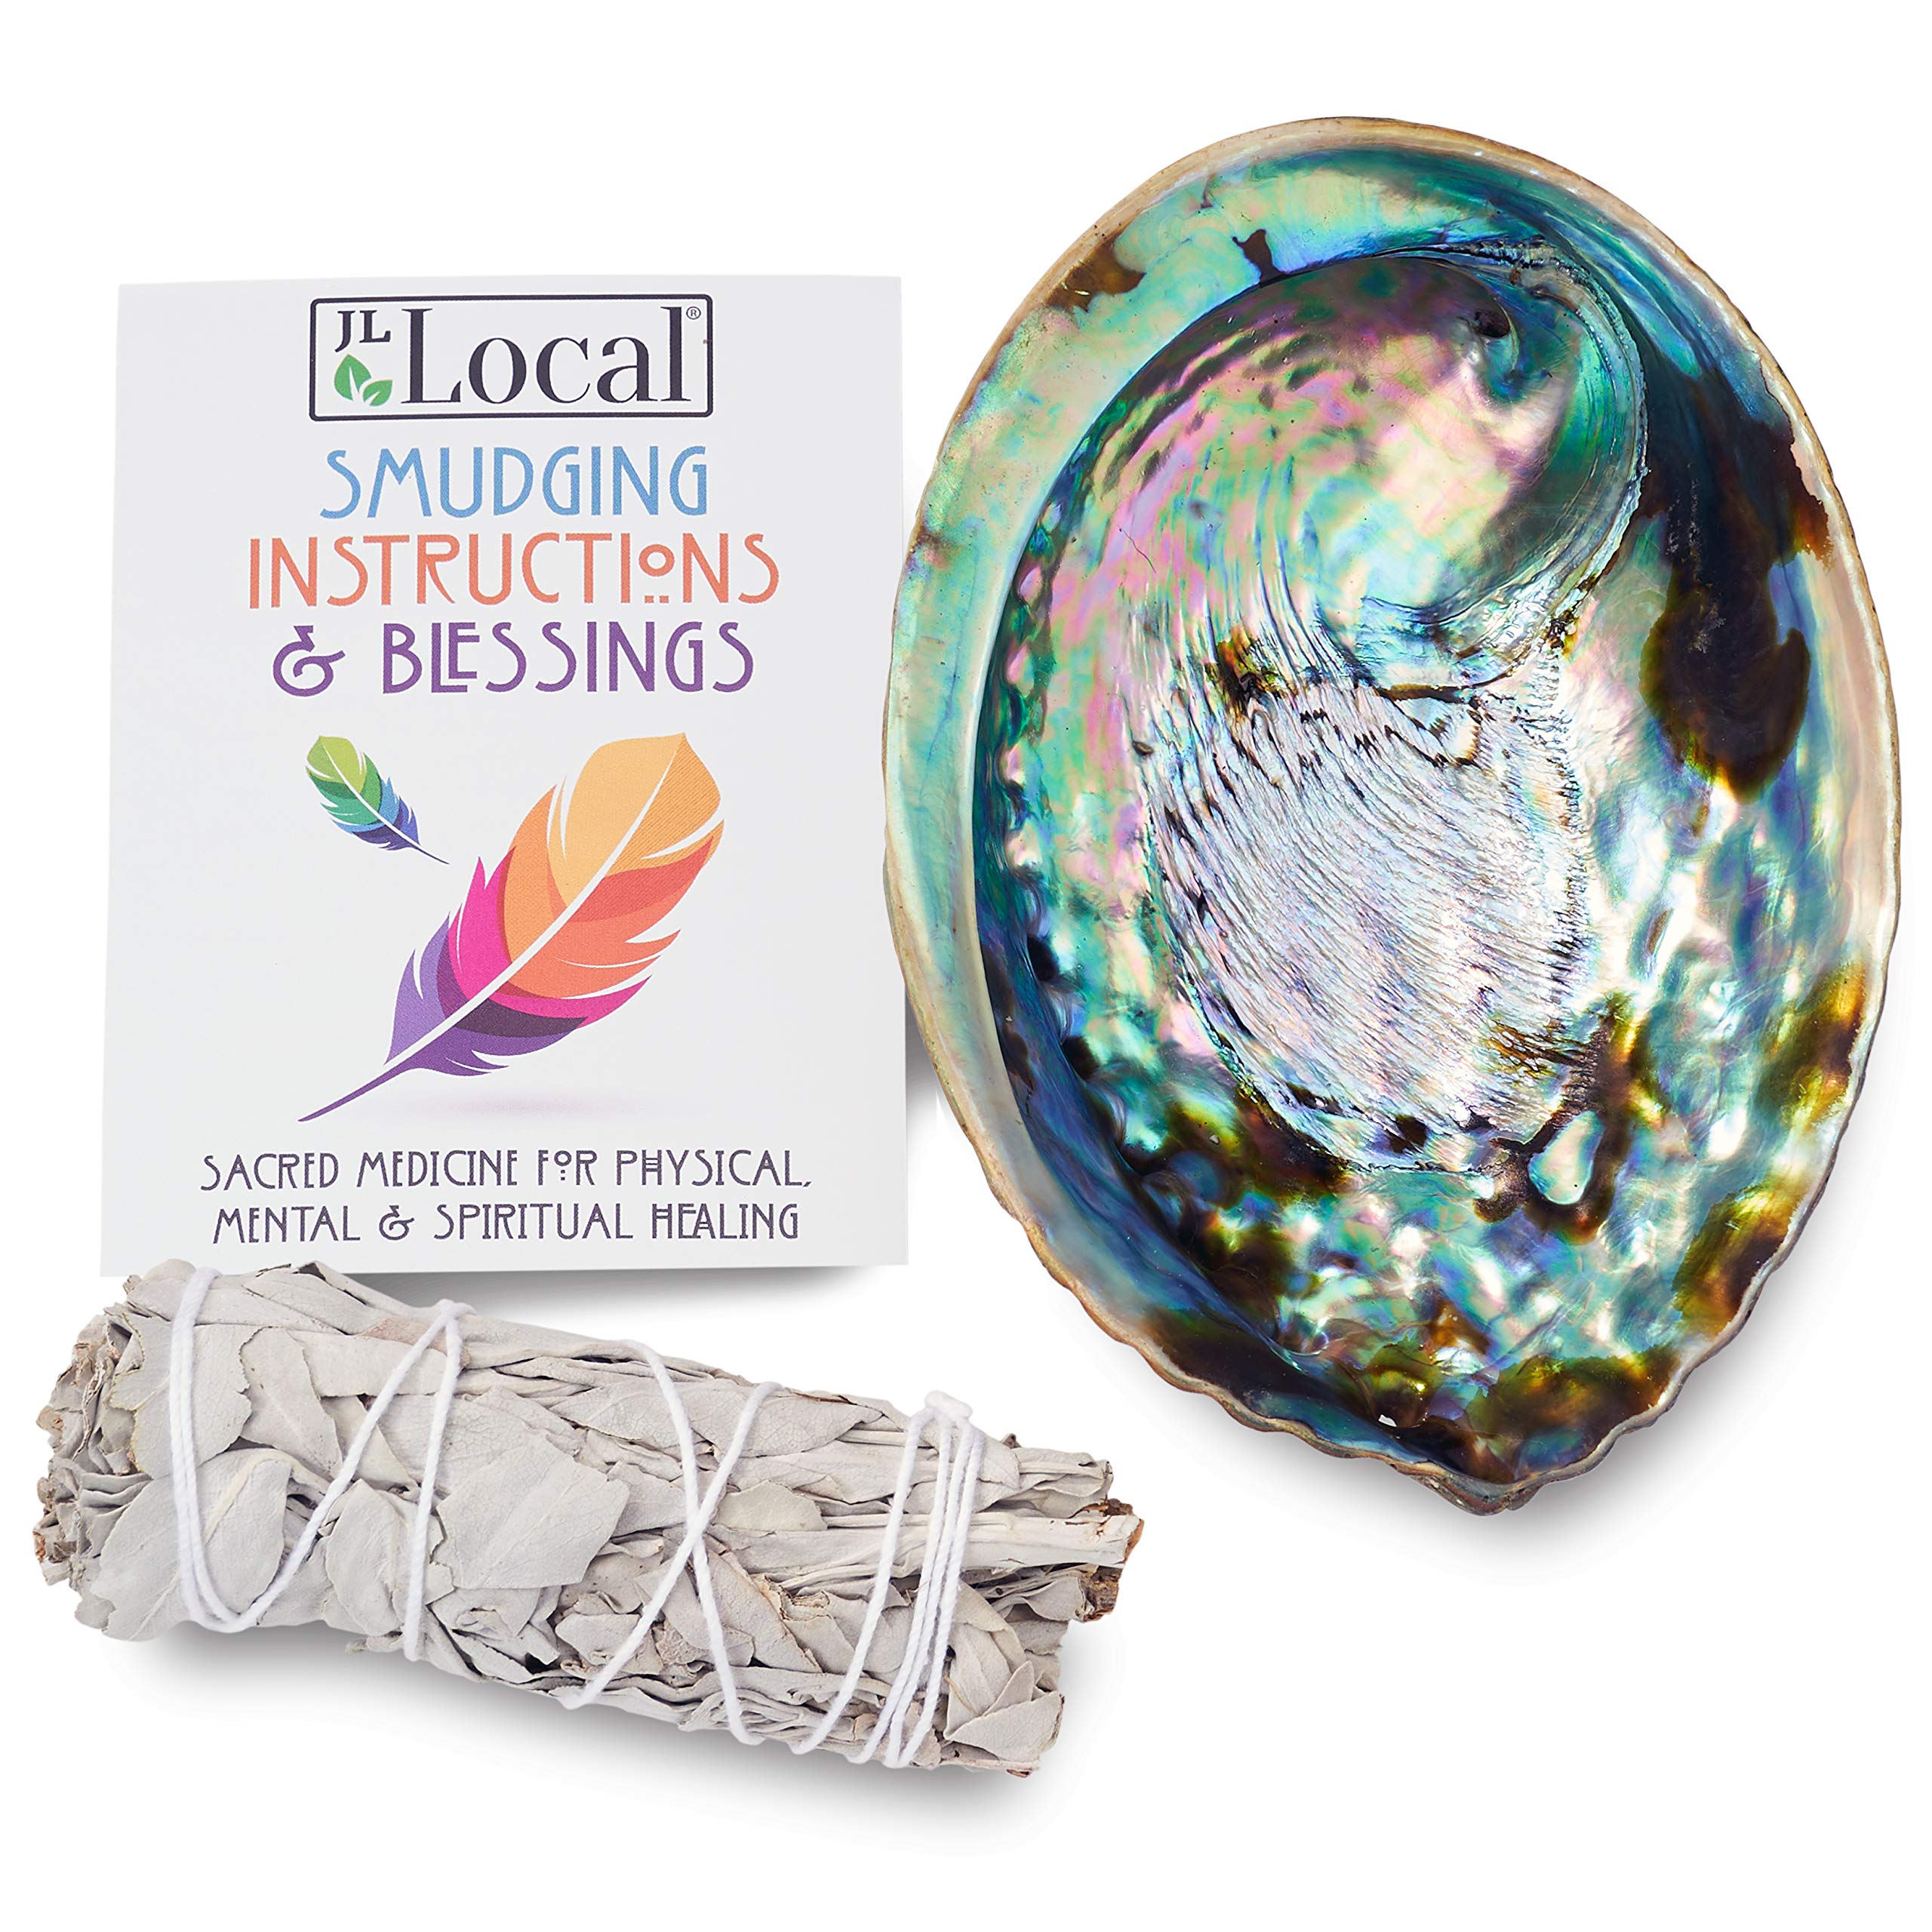 JL Local Origins Smudging Kit - White Sage Smudge Stick + Abalone Shell Bowl   Sustainably Sourced Healing Incense for Home Cleansing, Blessing, Protection, Prosperity, Meditation, Positive Energy by JL Local